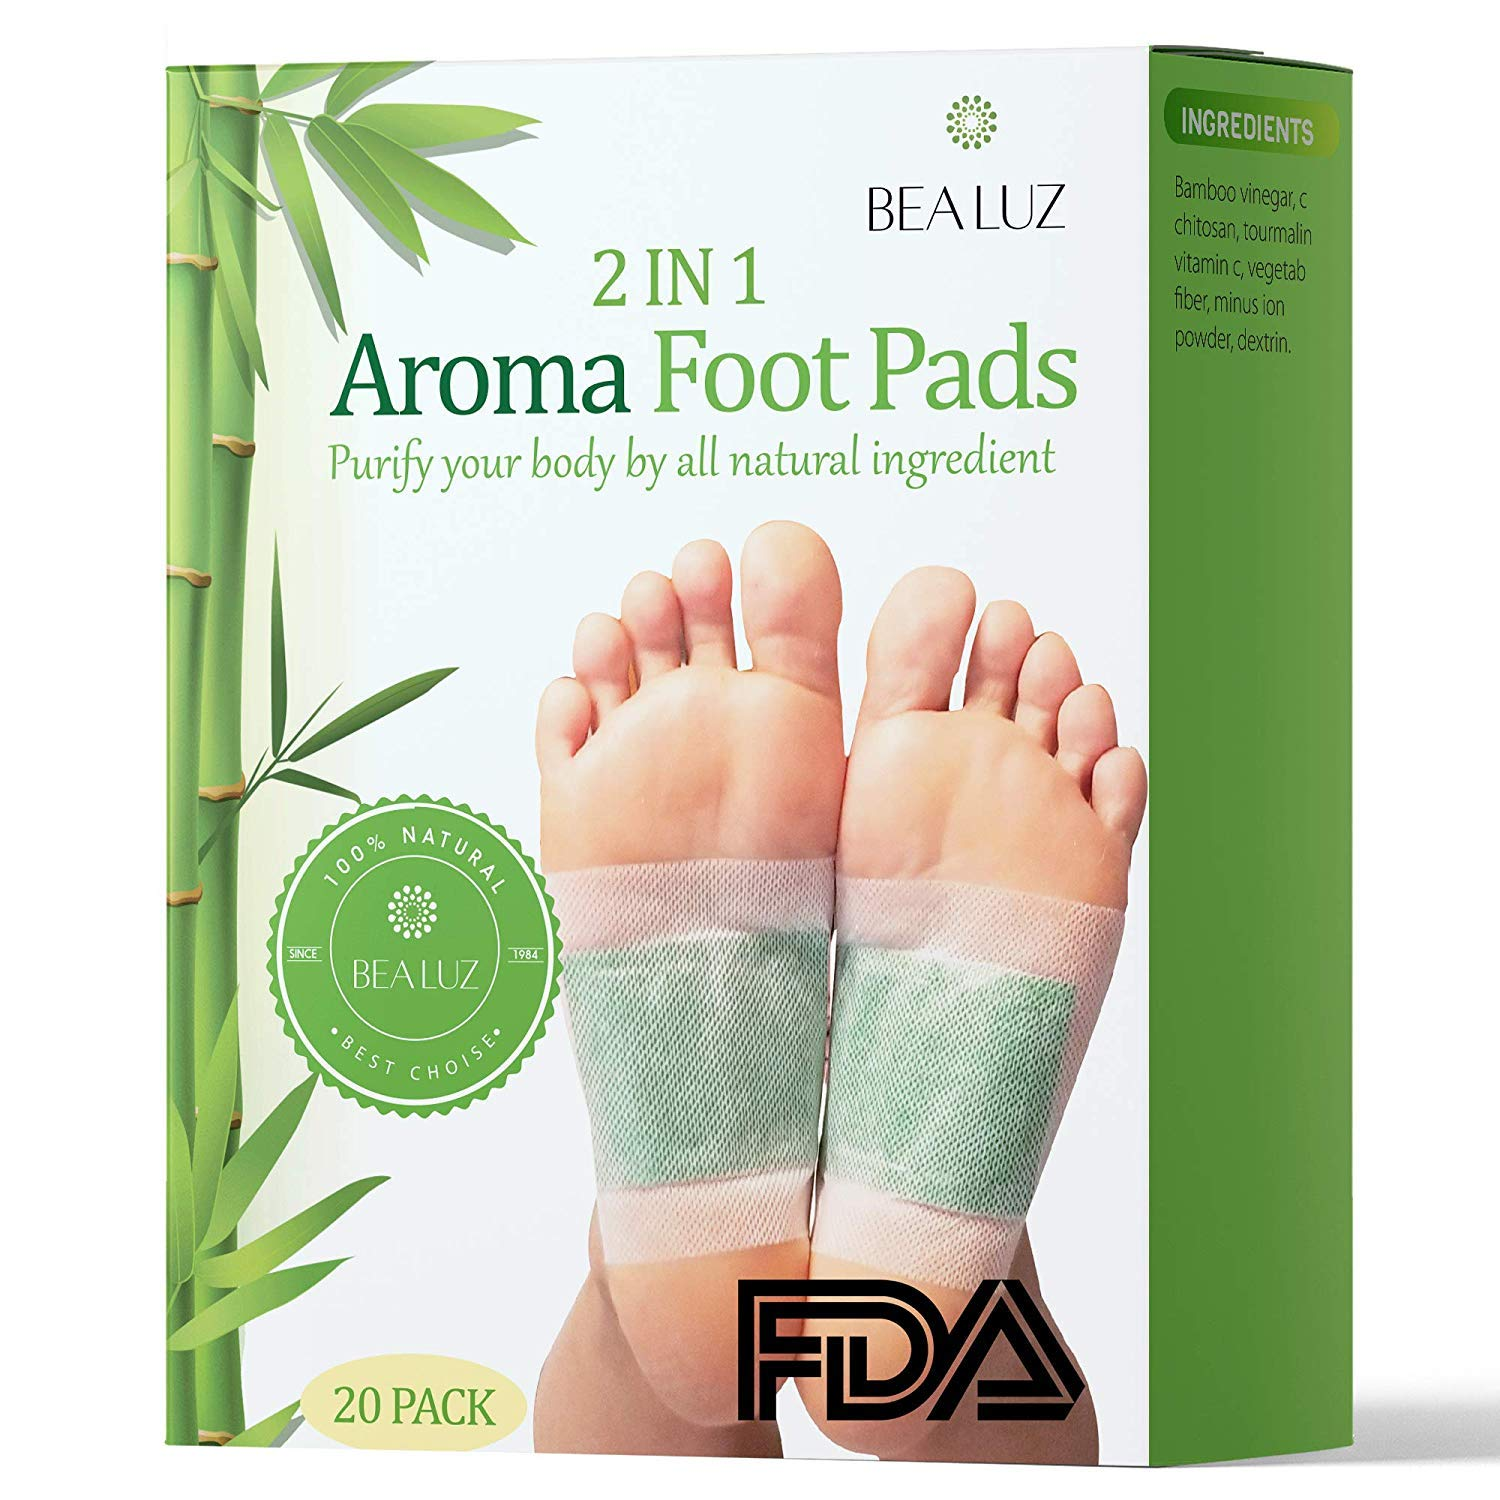 Foot Pads - 2 in 1 Purifying Foot Pads, 100% Natural for Pain Relief, Calm & Improved Sleep, Natural Cleansing, Aromatherapy Pads by Bea Luz (20 Pack/Rose, Lavender, Ginger, Green Tea)